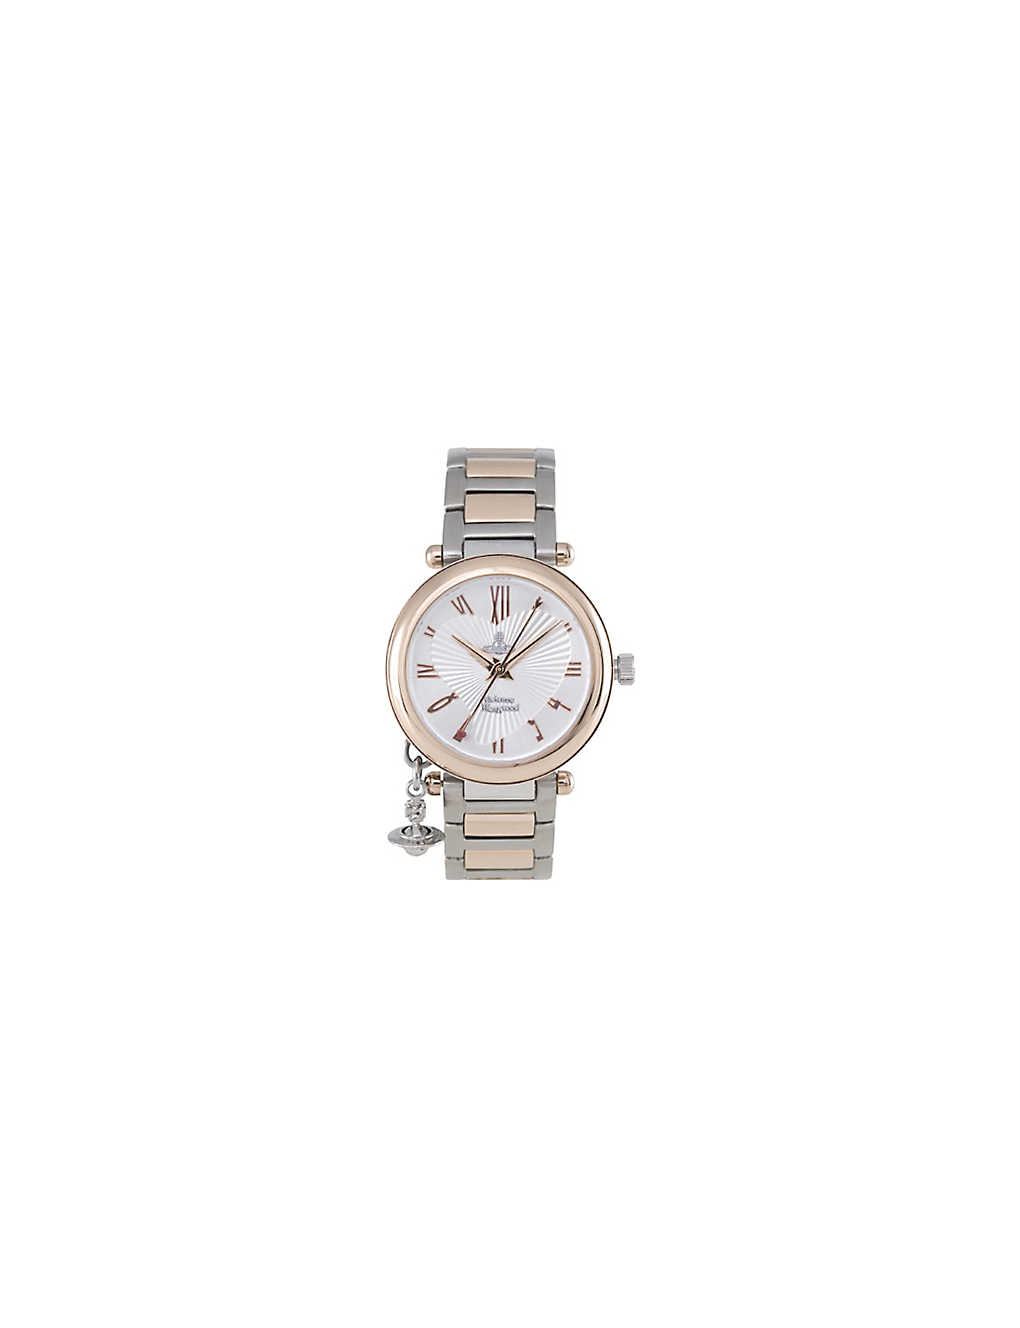 b31ce8866909 VIVIENNE WESTWOOD - Orb rose gold and silver ladies' watch ...